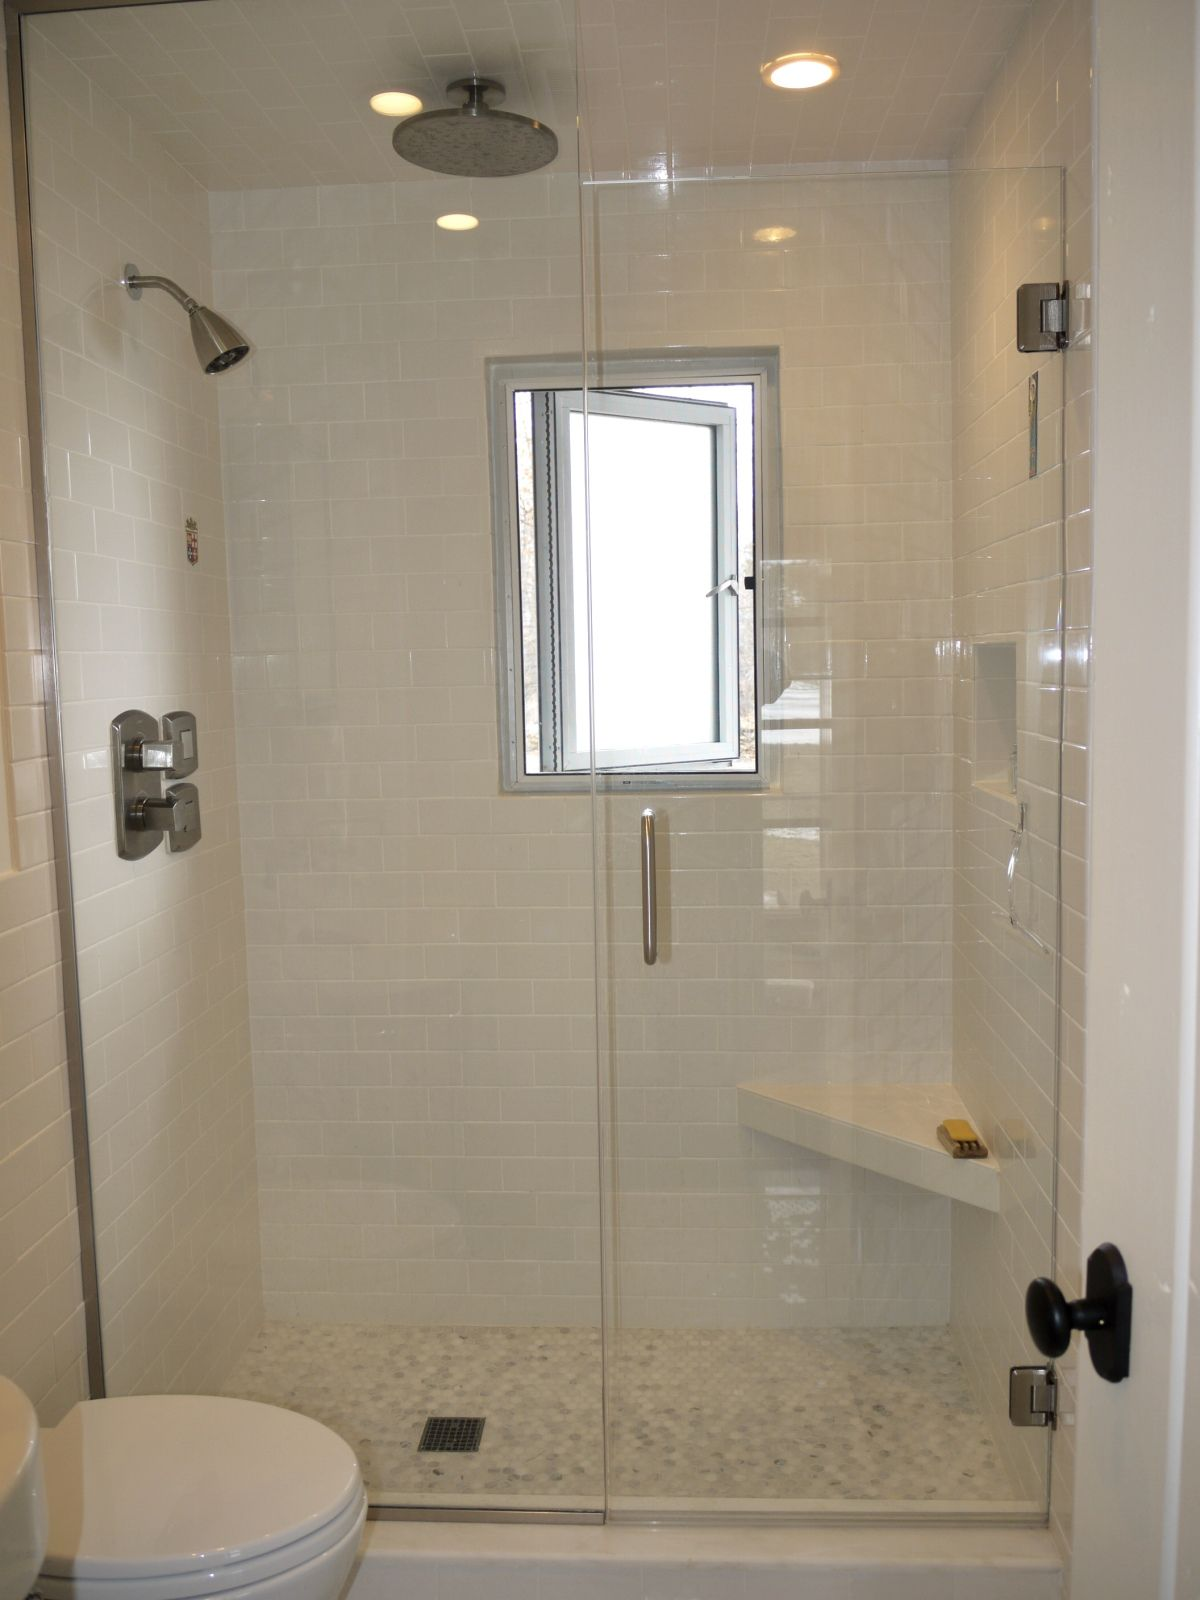 Small Walk In Shower With Window Small Grip Bar And Foot